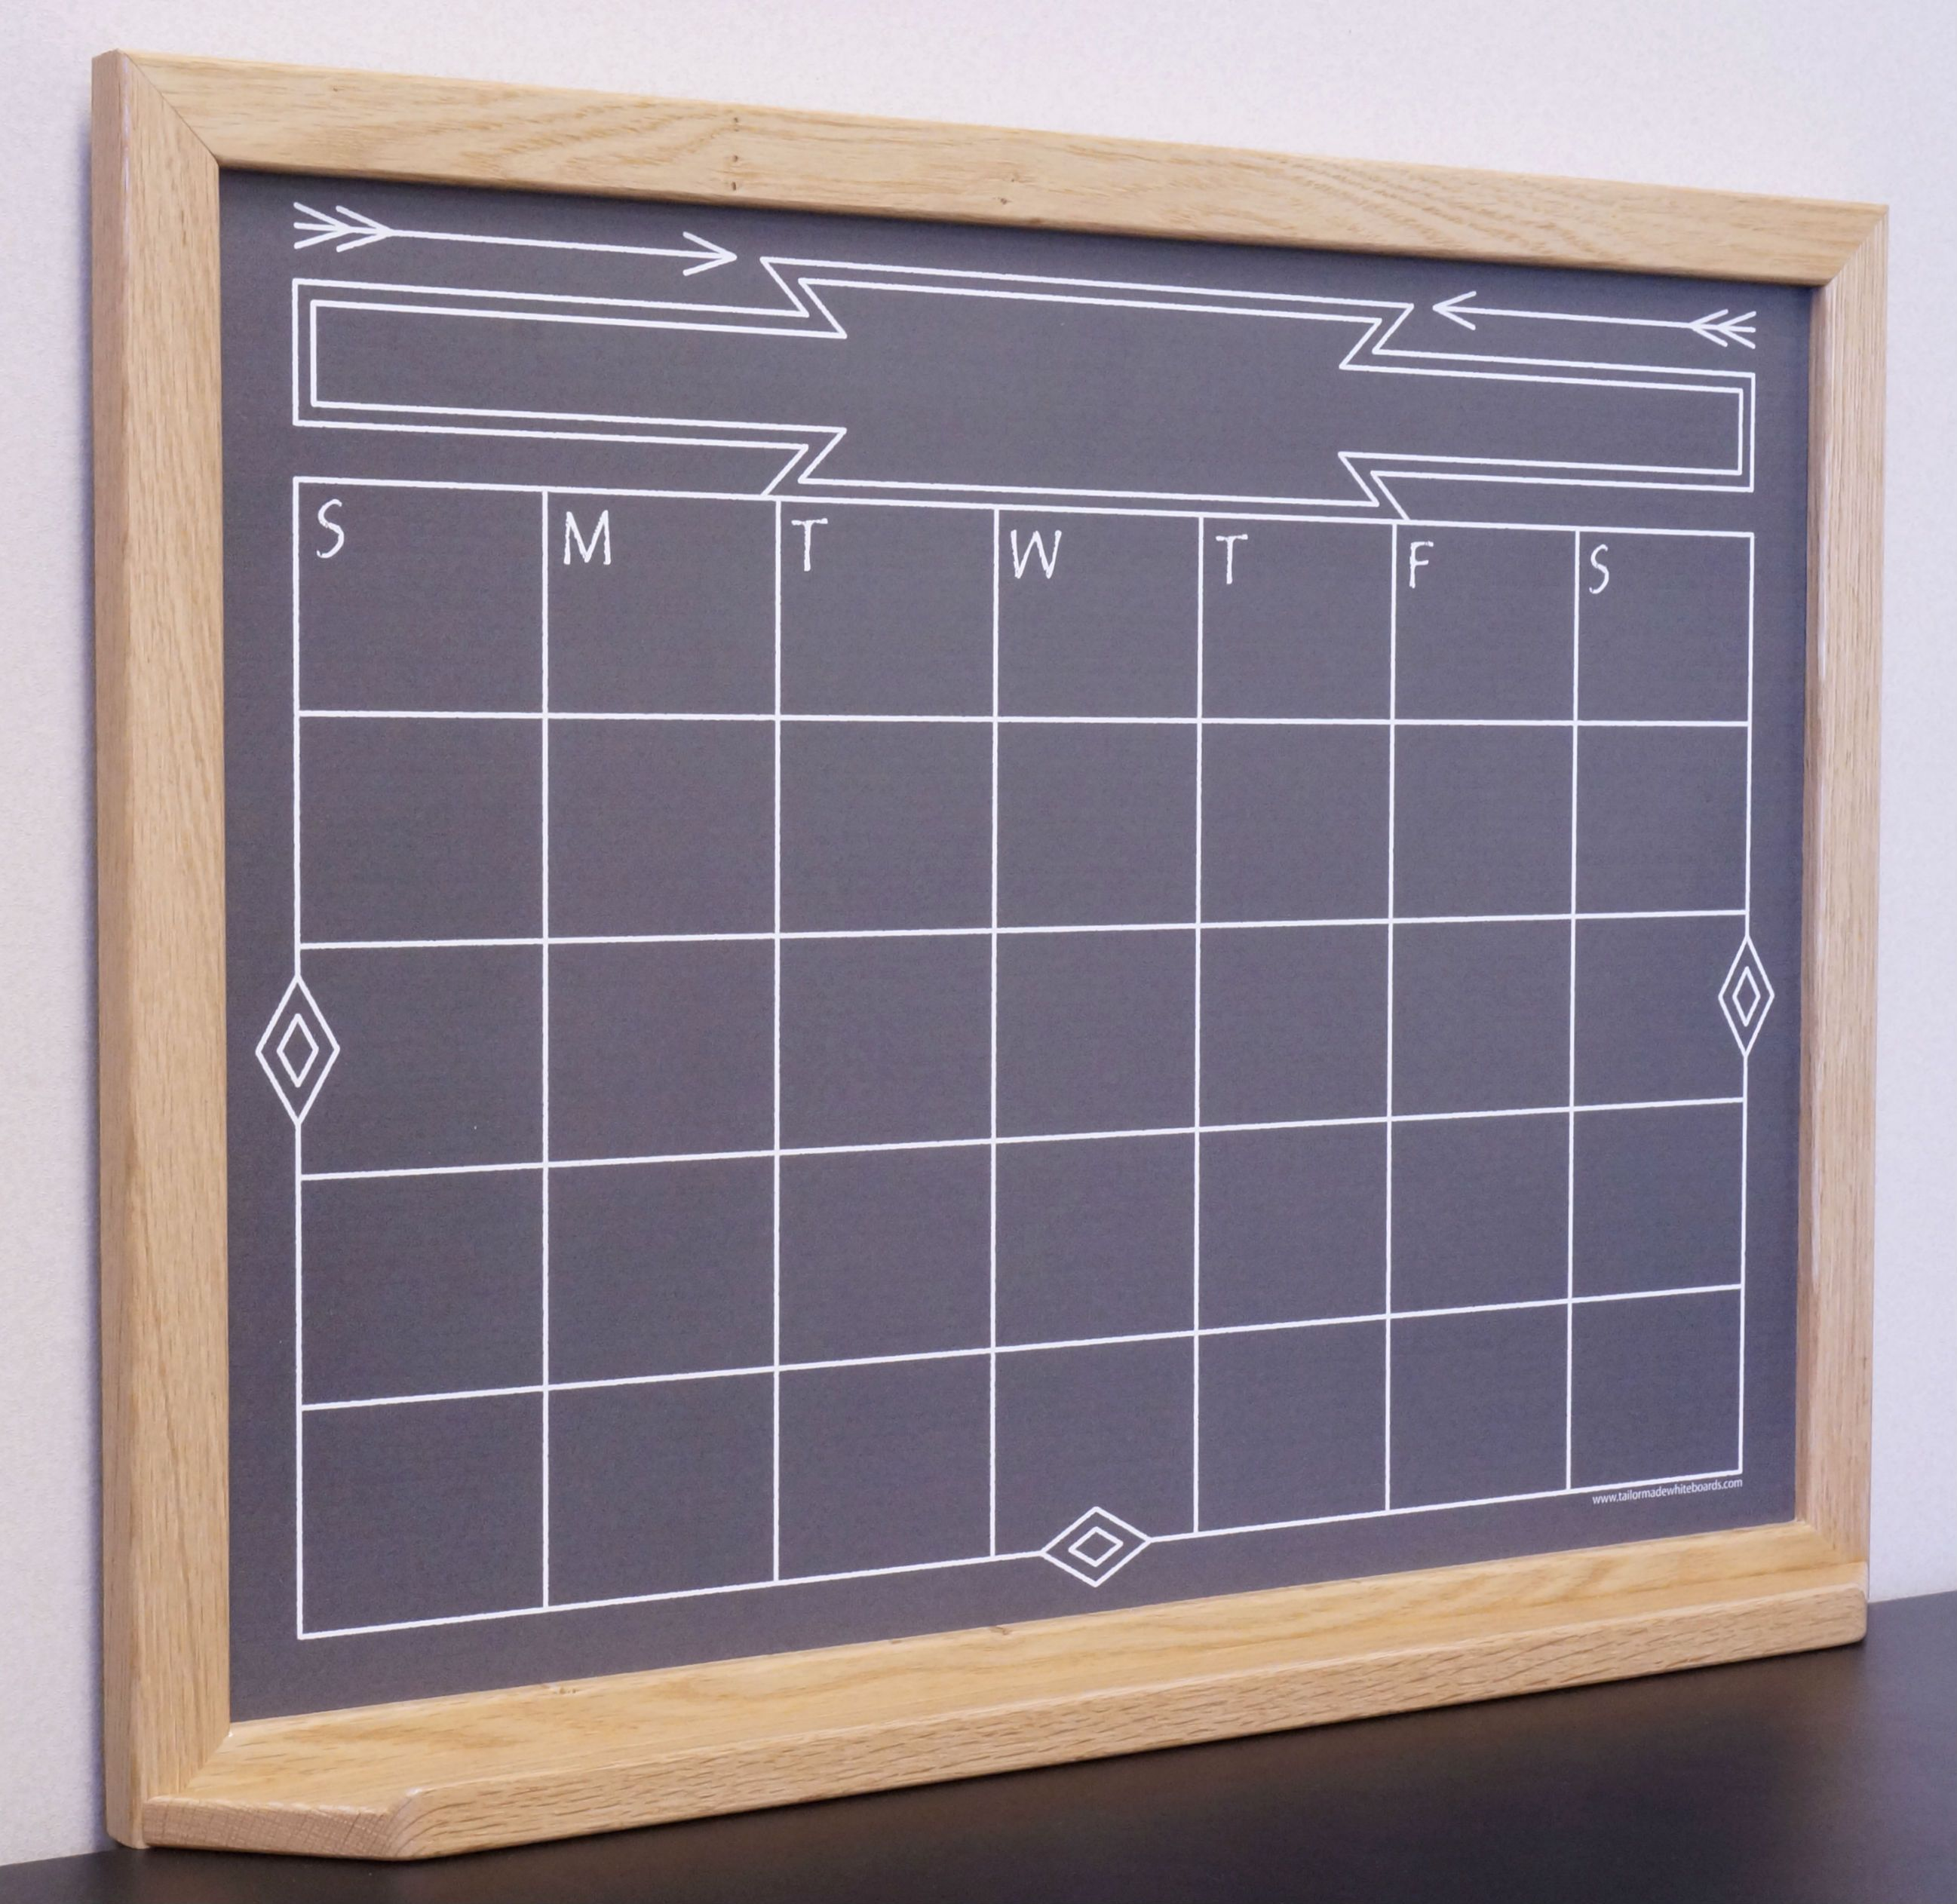 Our Framed Monthly Calendar Whiteboards Will Look Great